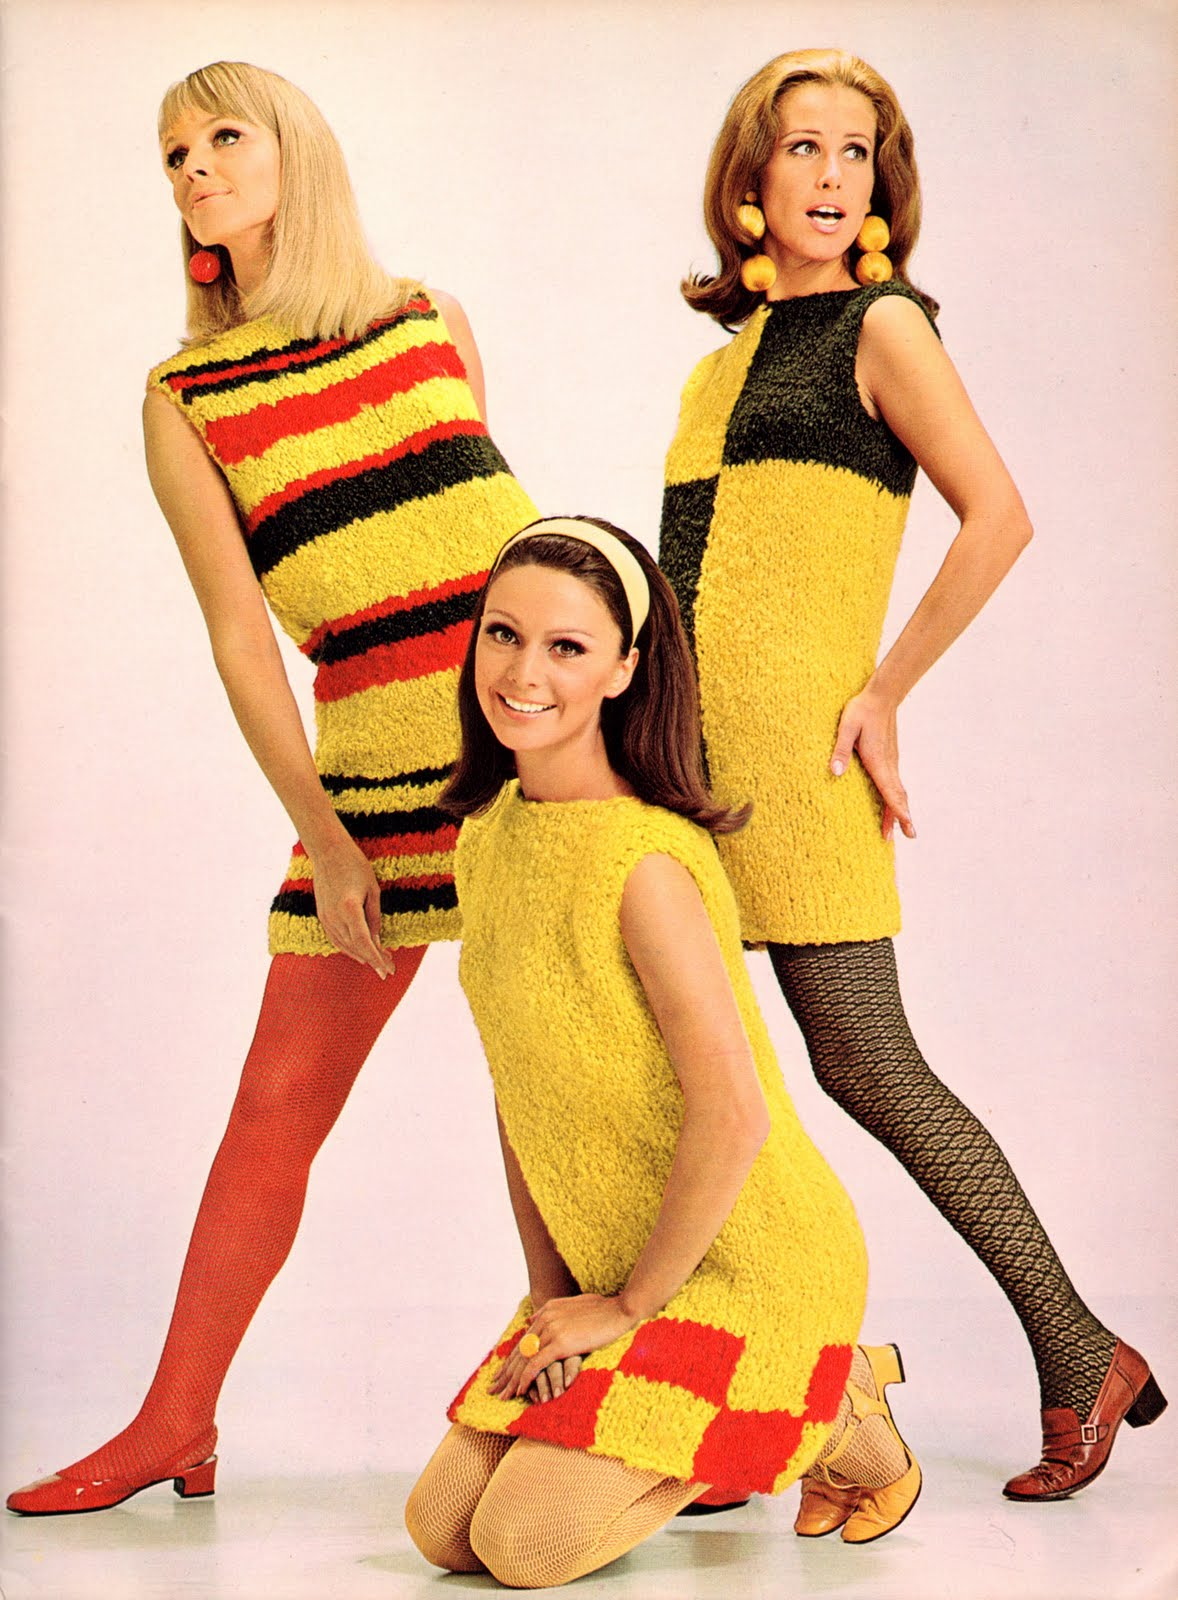 1960s Fashion for Women & Girls | 60s Fashion Trends ... |From The 60s Clothing Styles